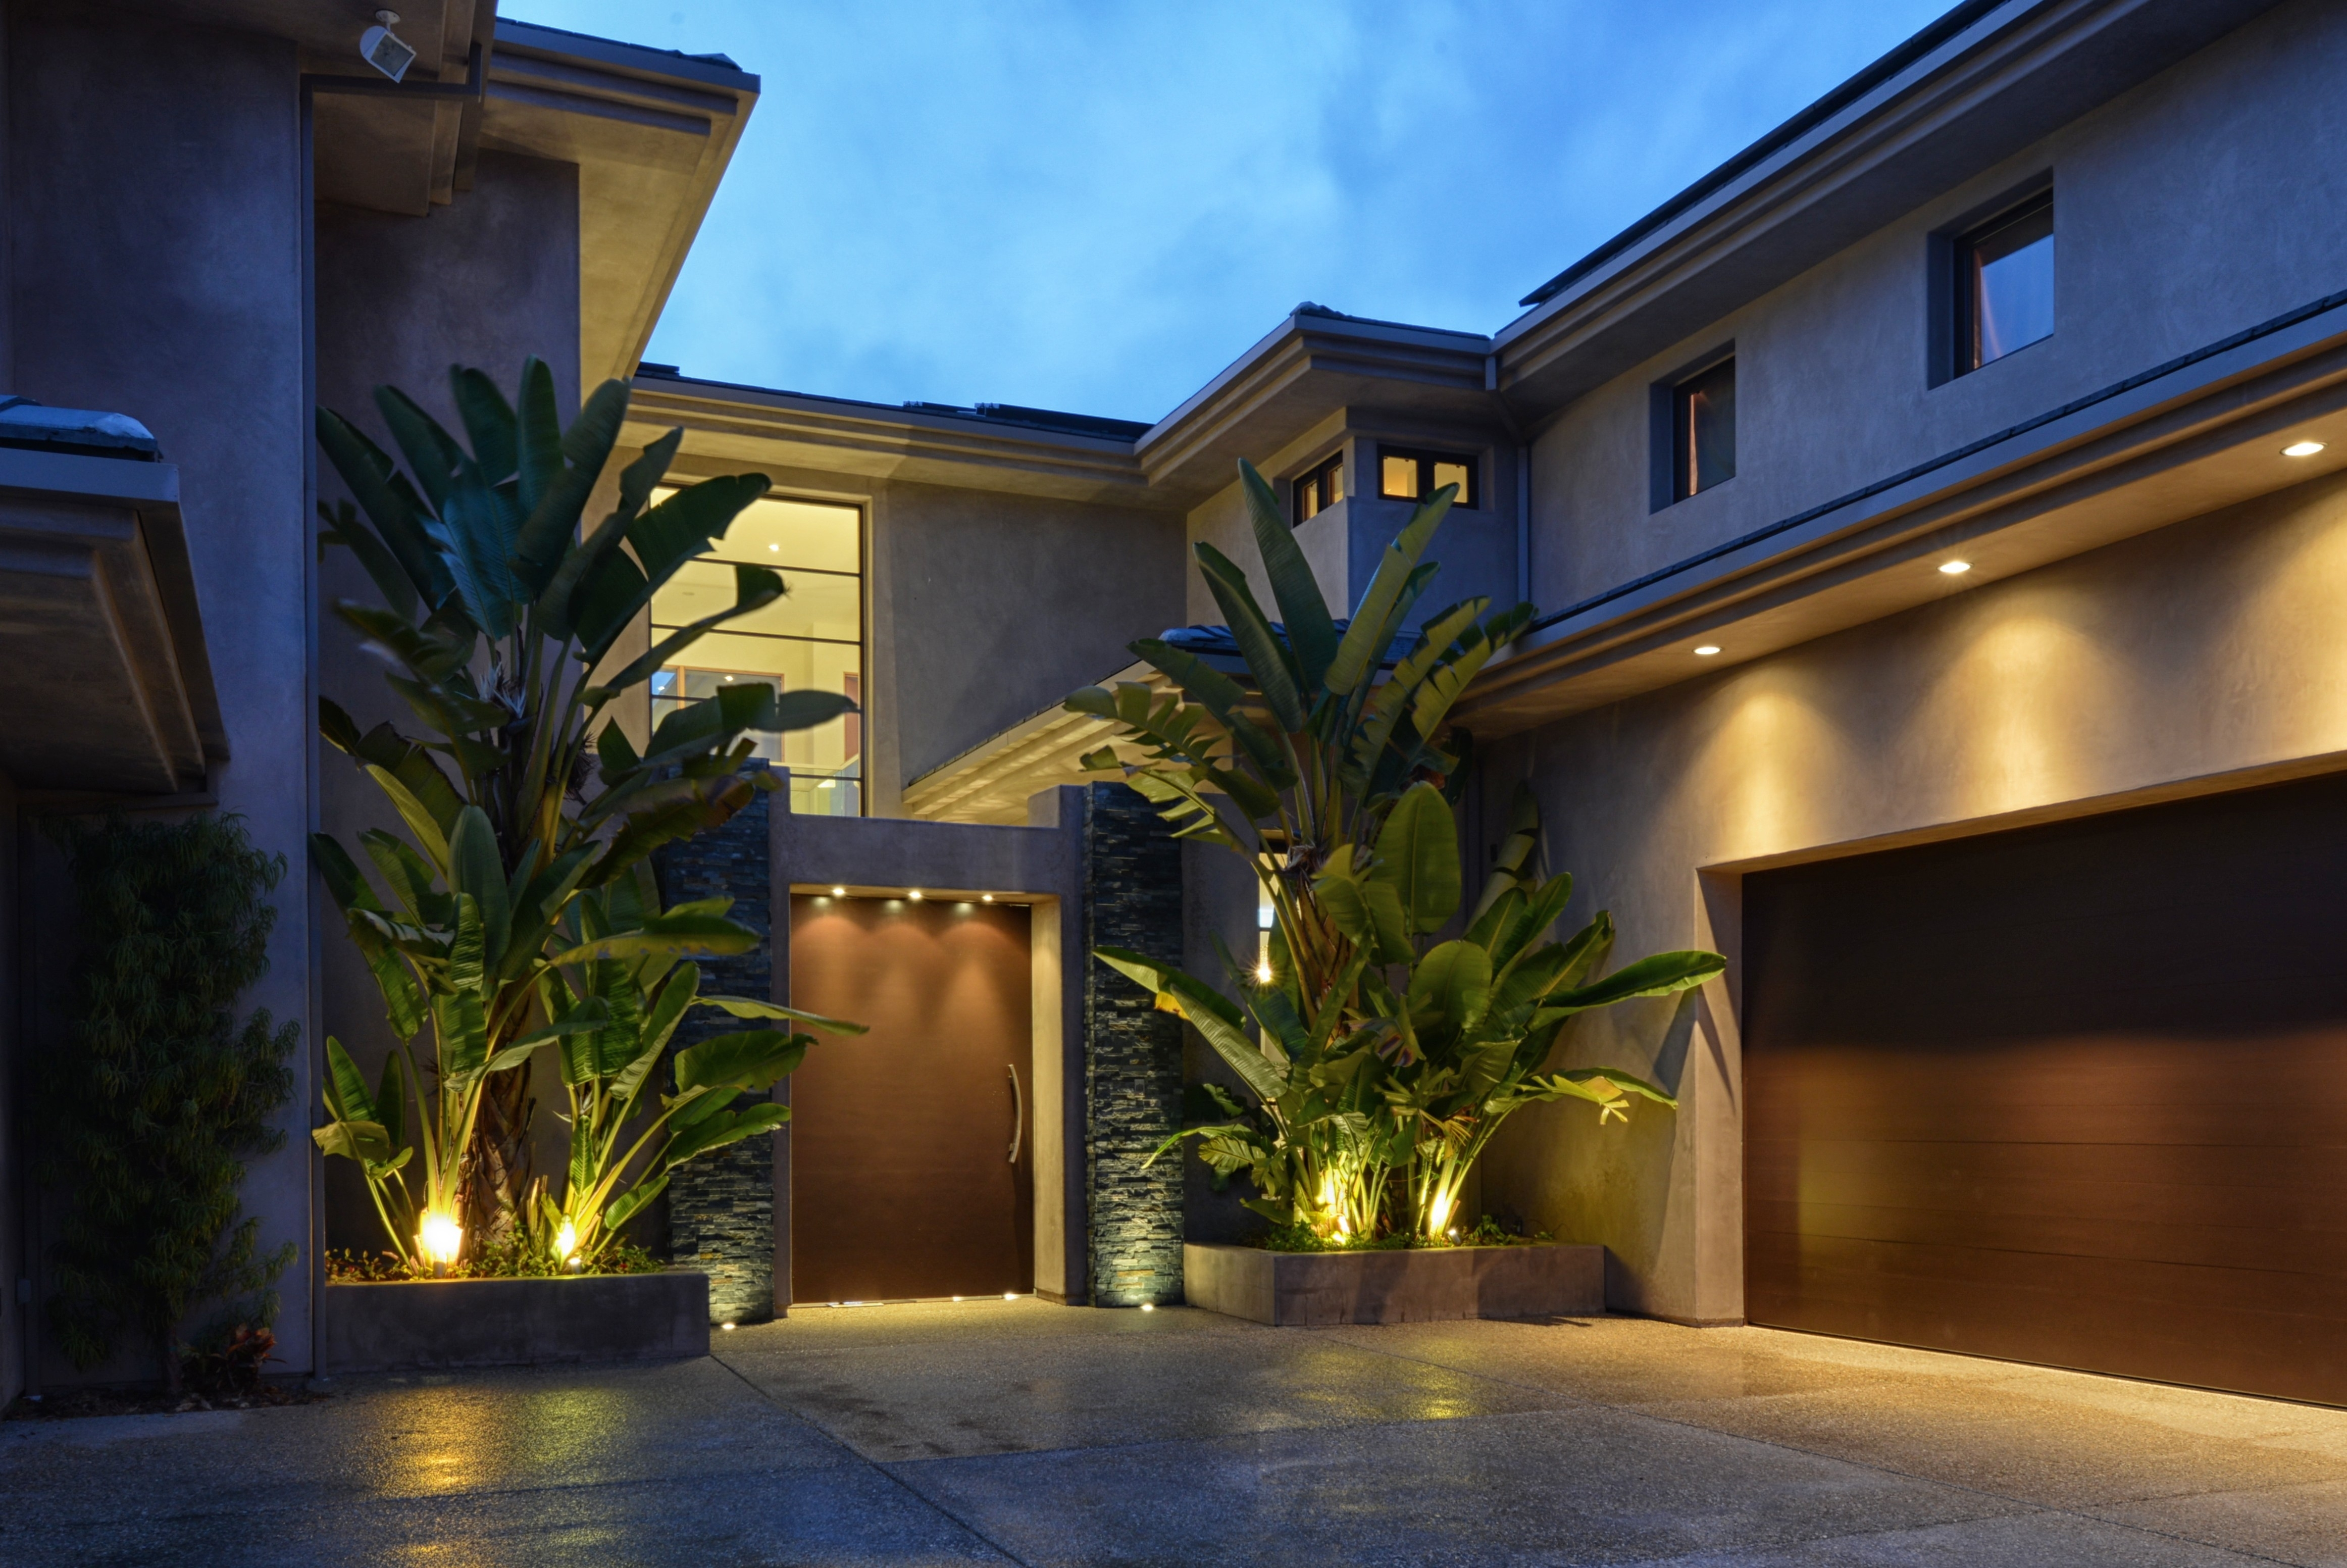 Modern Outdoor Lighting For Dramatic Exterior Appearance – Ruchi Designs With Modern Outdoor Lighting (#14 of 15)